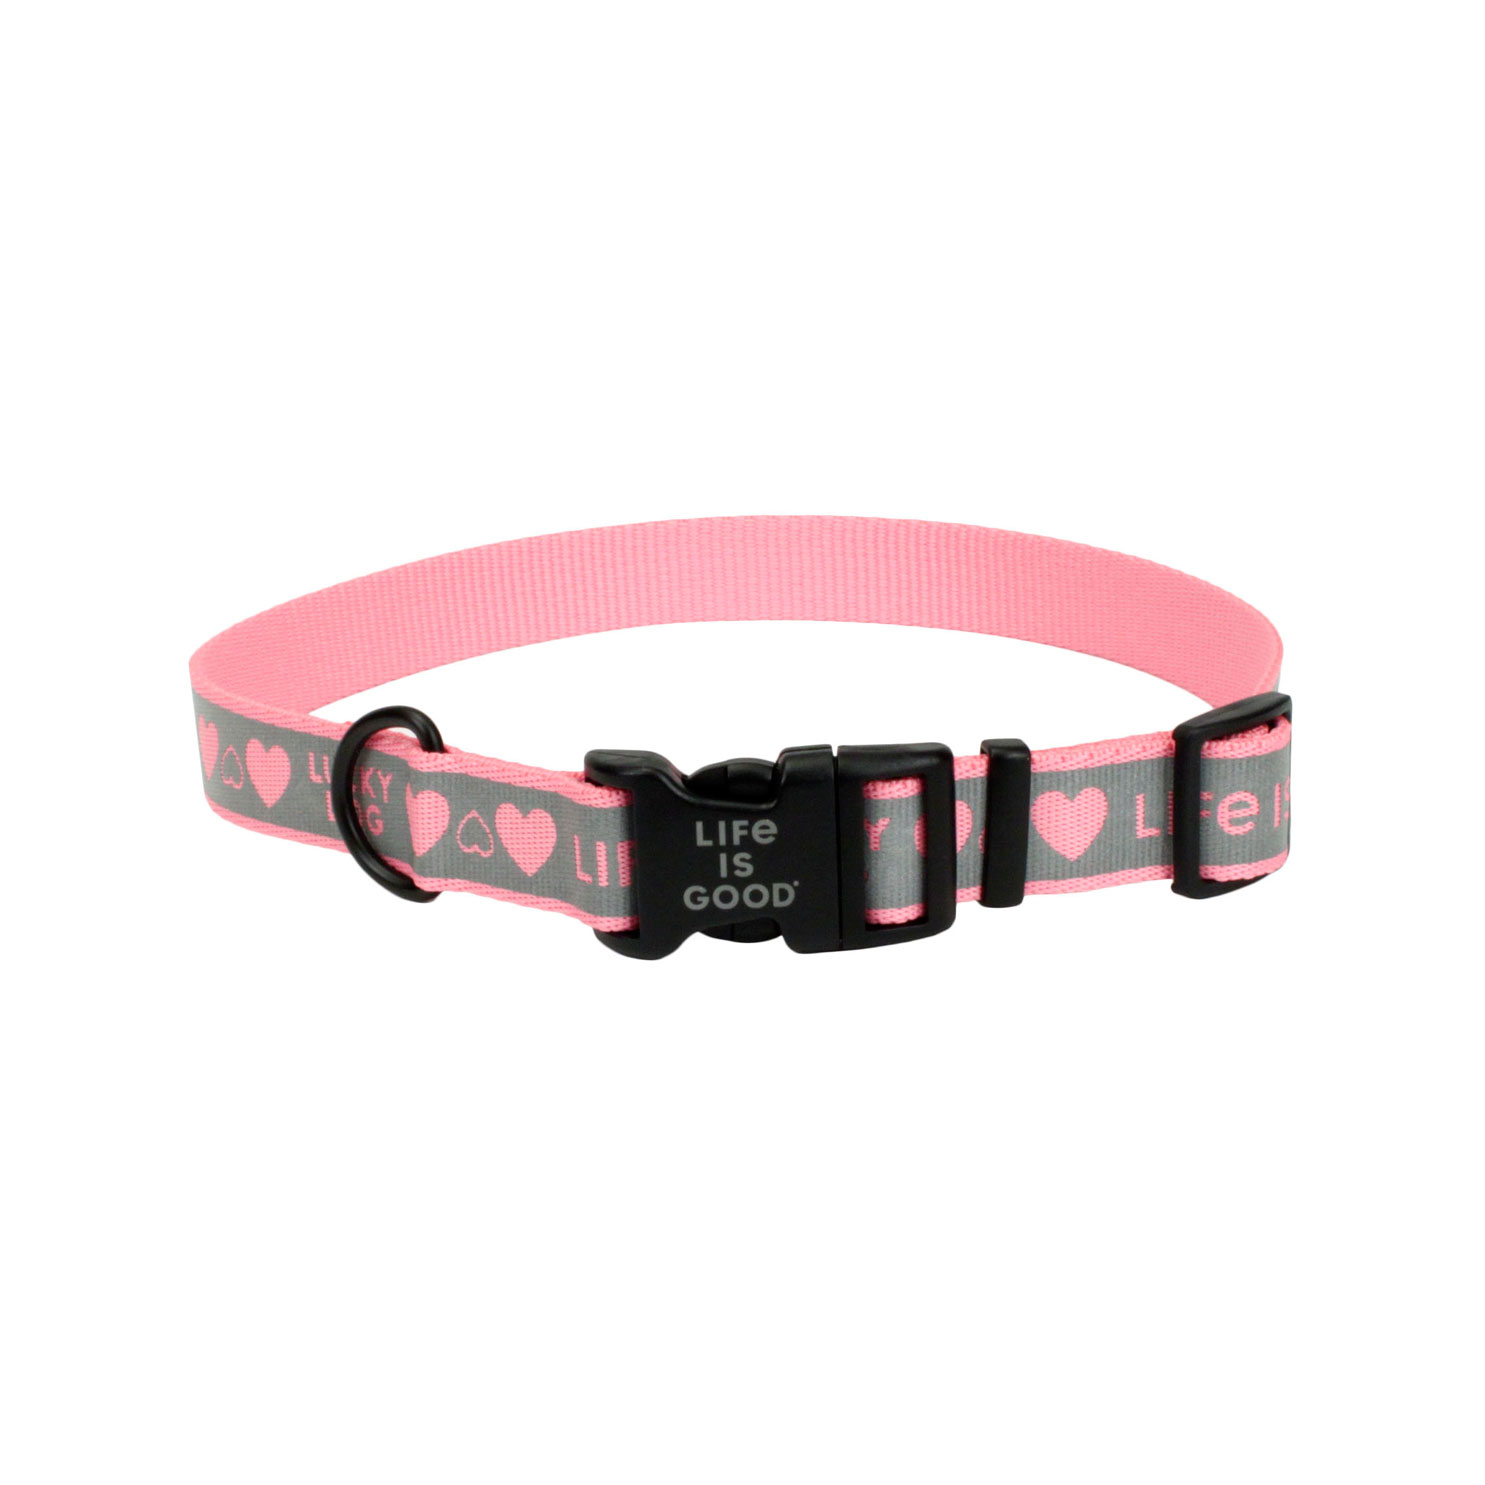 Life is Good® Reflective Dog Collar